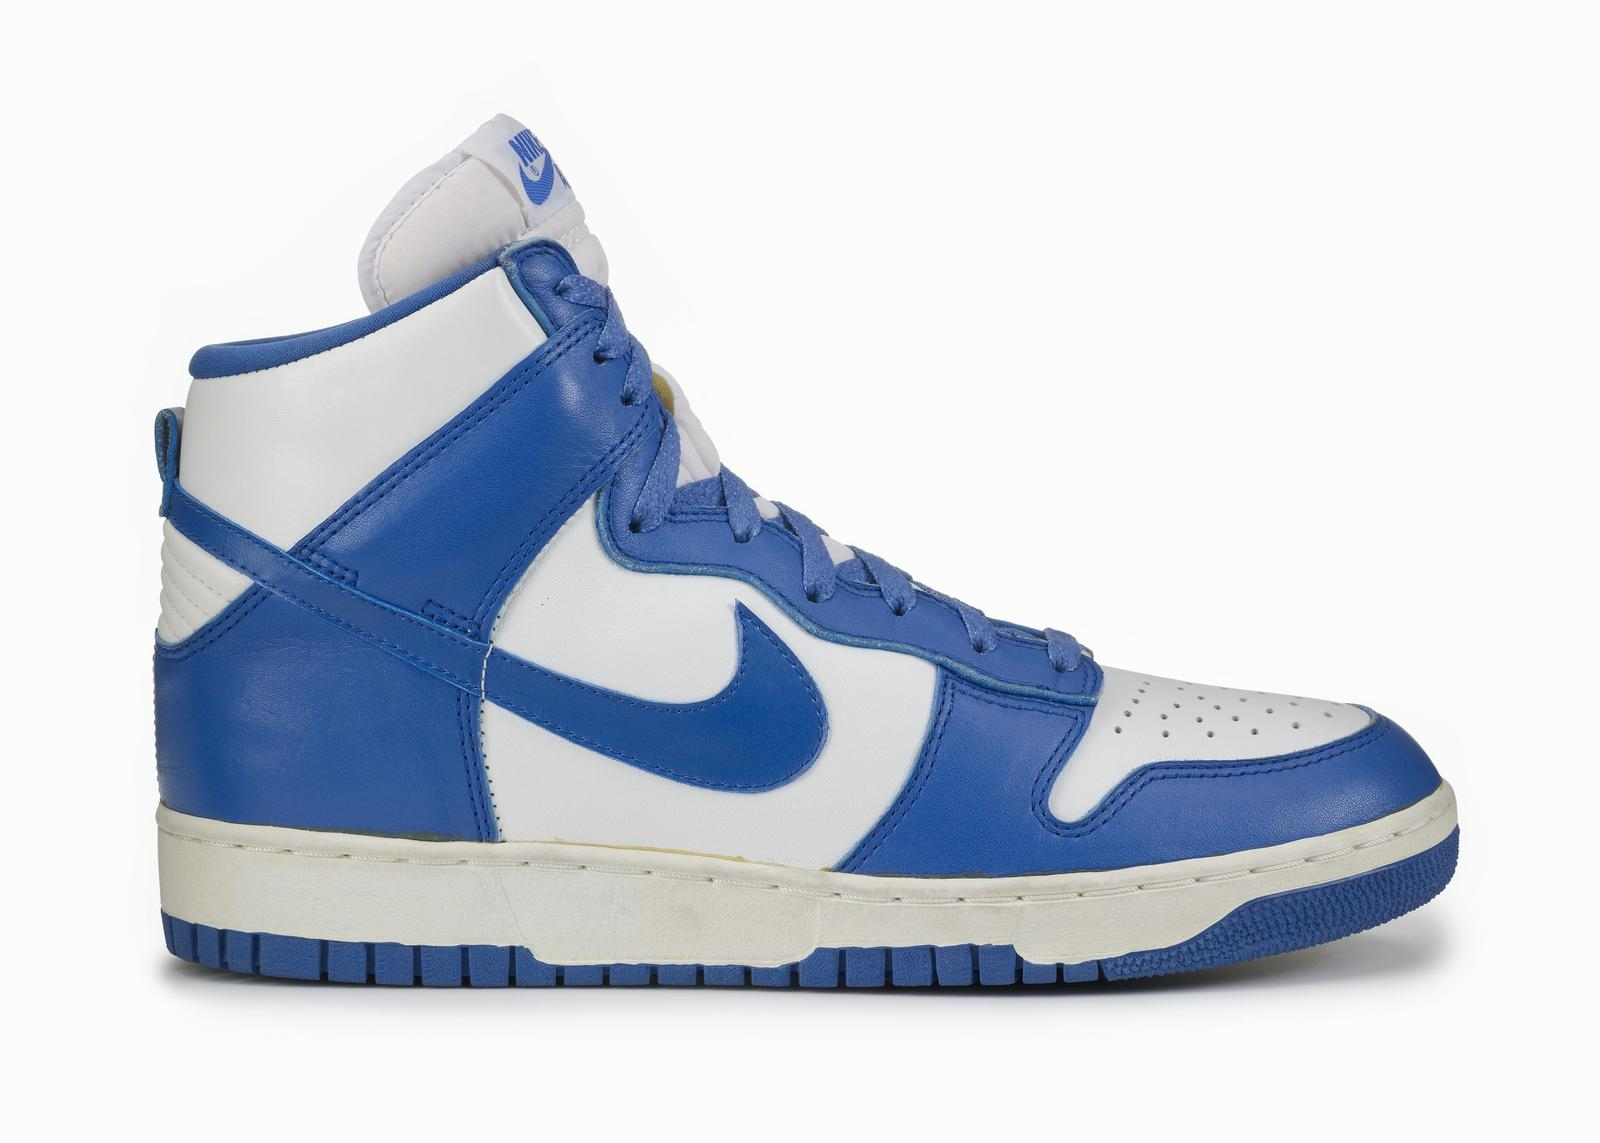 71632d05a1 Inside Access  The Nike Dunk Celebrates 30 Years as an Icon - Nike News